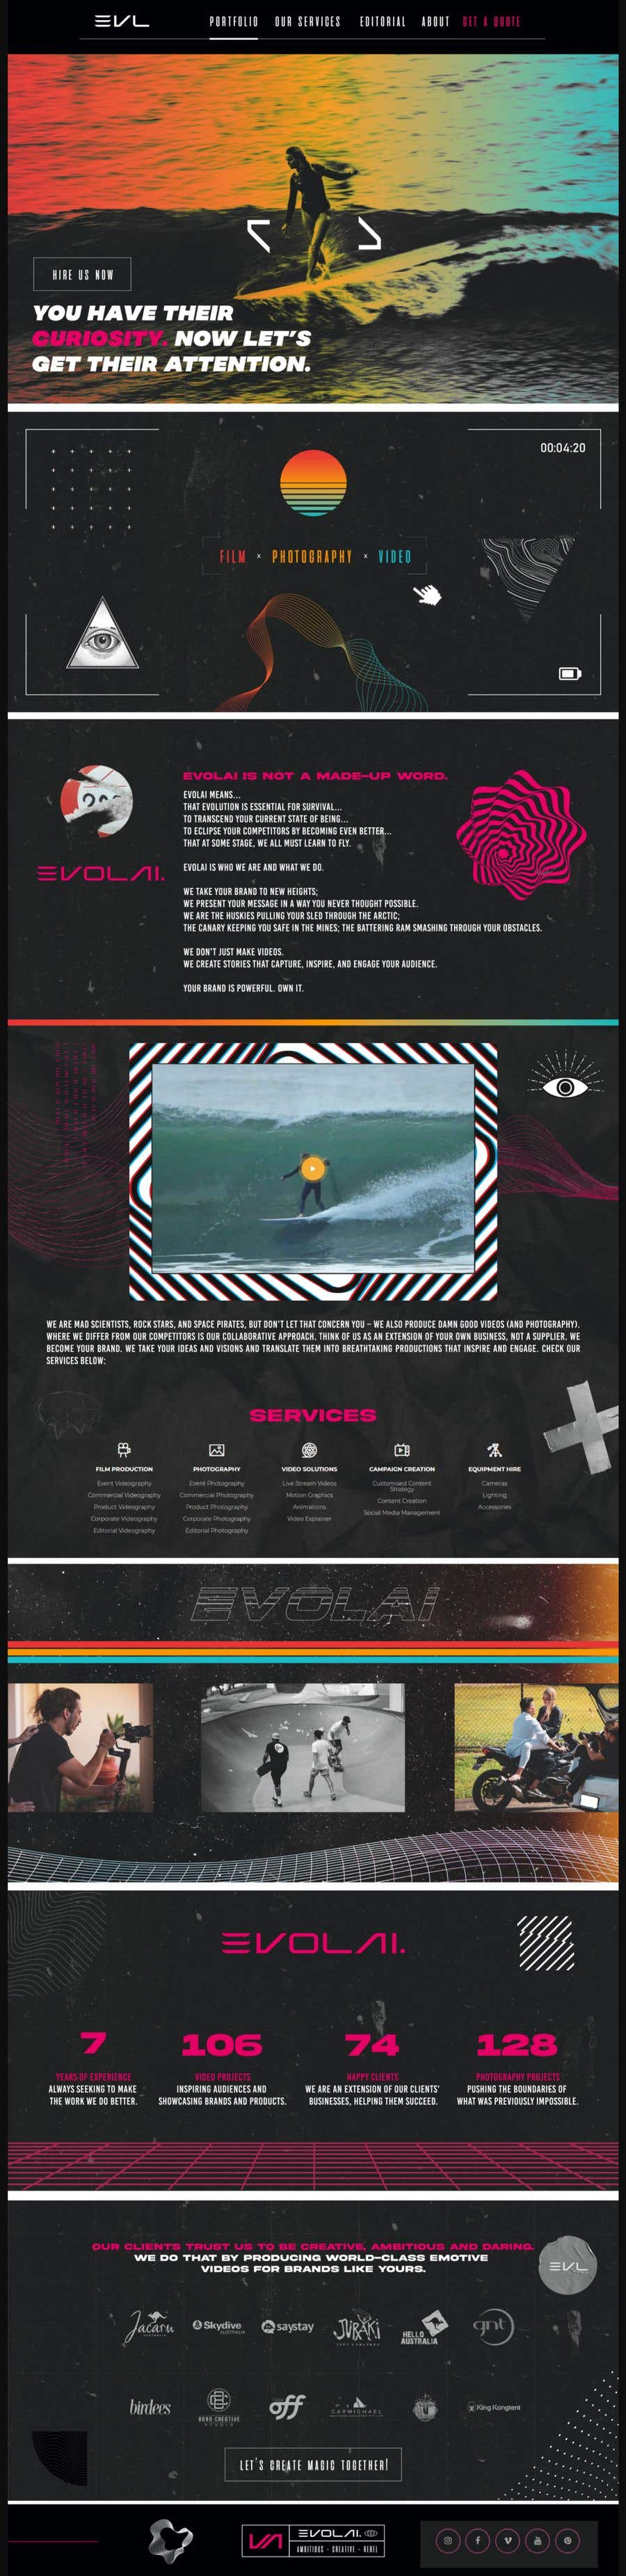 Contest Entry #                                        10                                      for                                         Web Page Design - redesign Services page for photography business